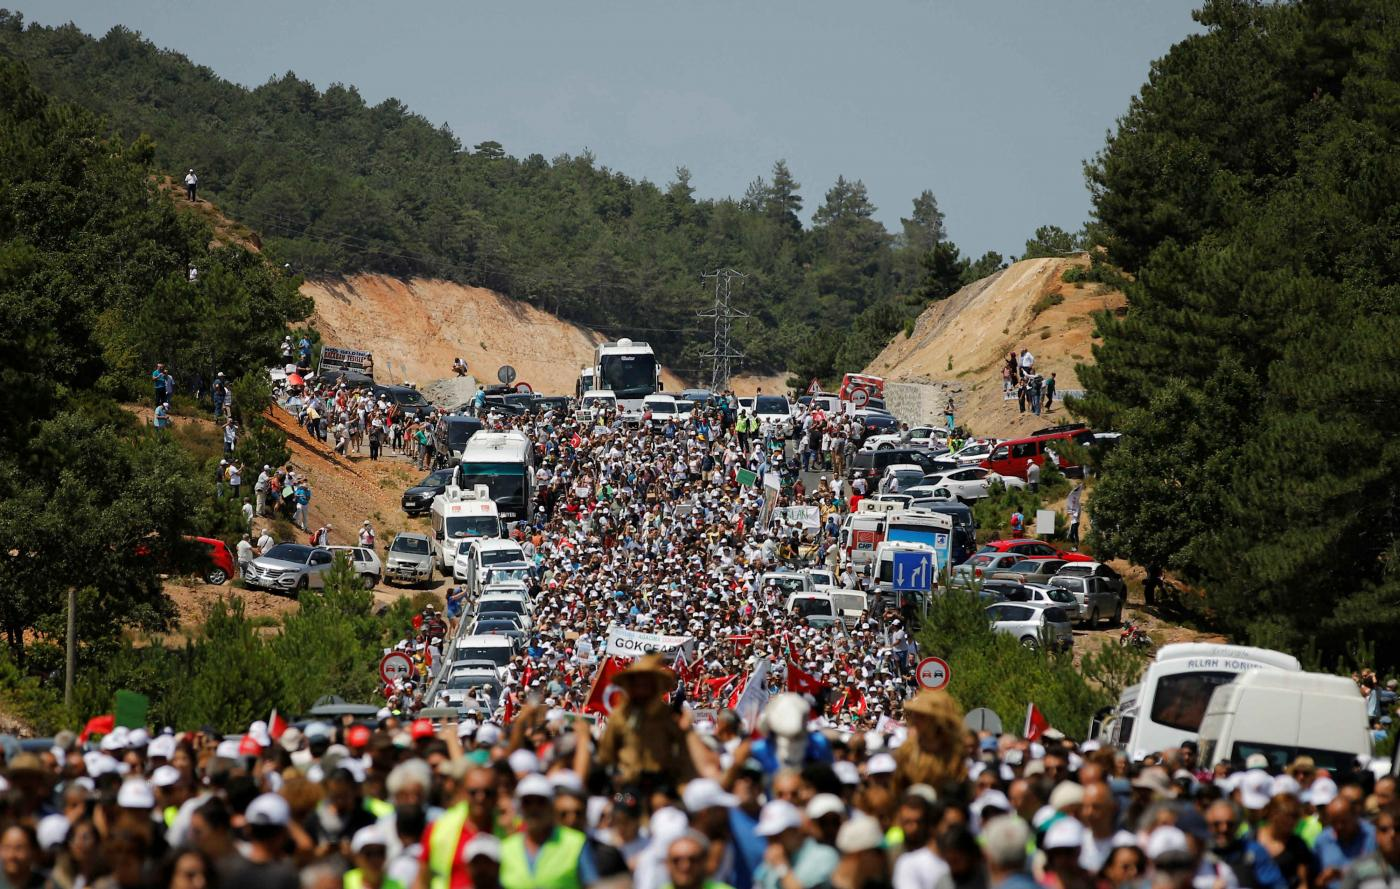 Stop the eco-slaughter': Thousands march in Turkey against Canadian